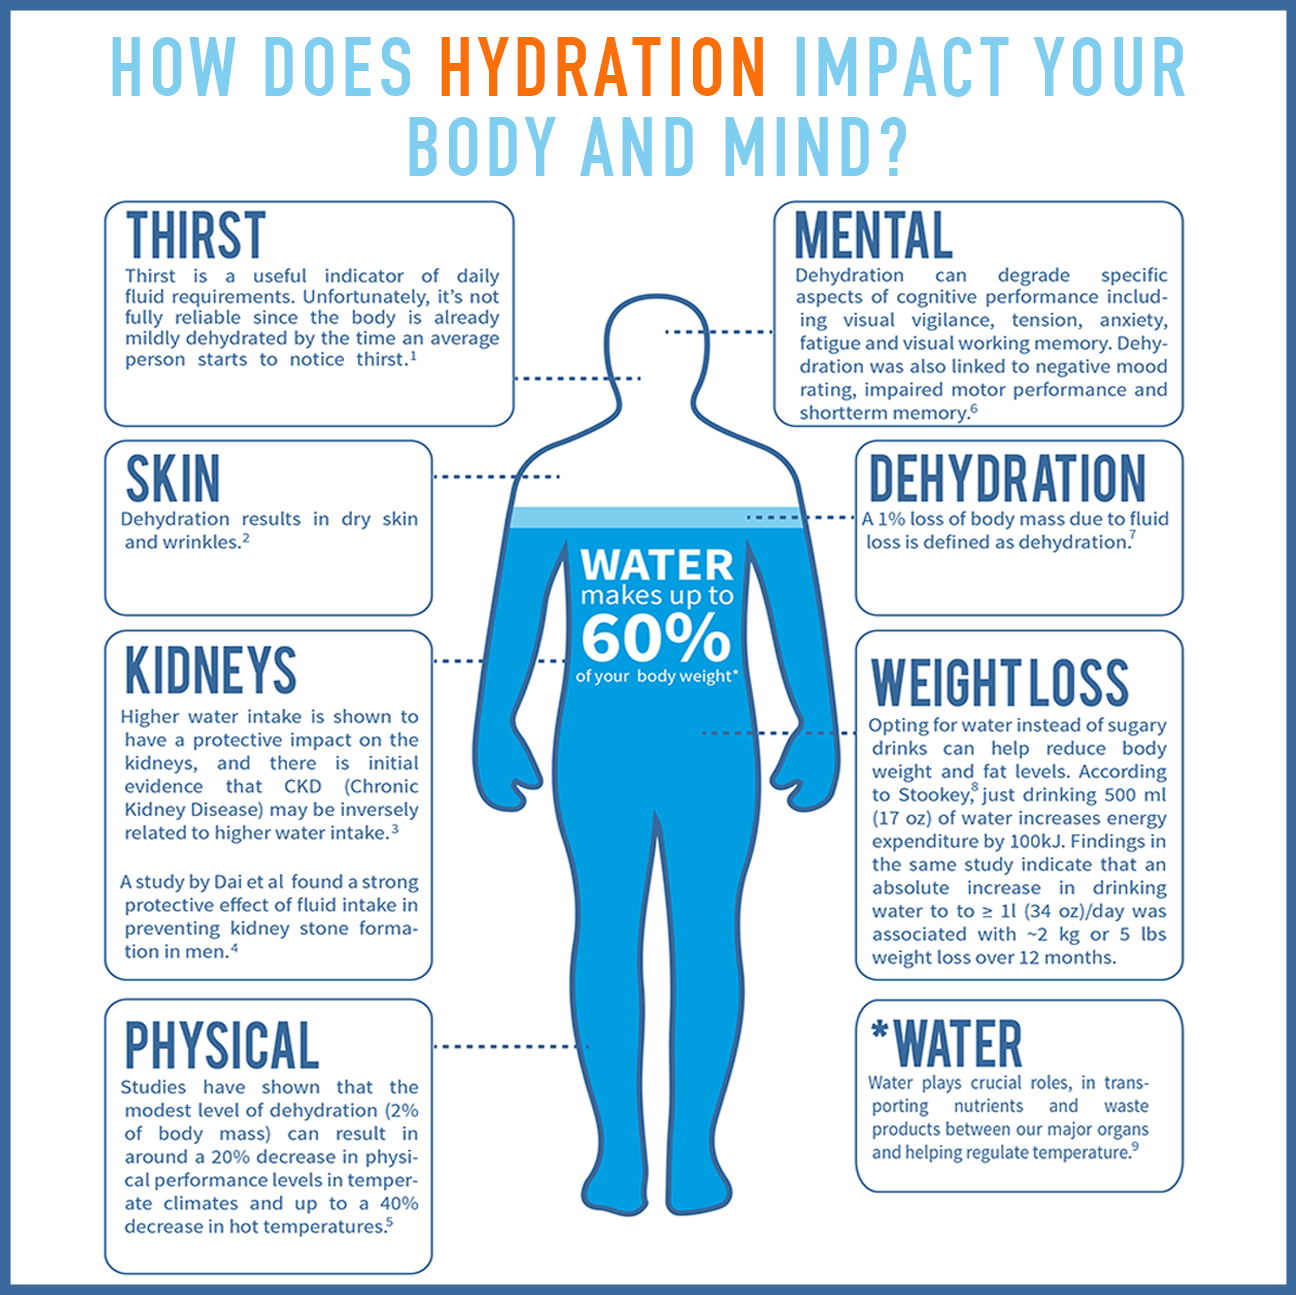 How does hydration impact your